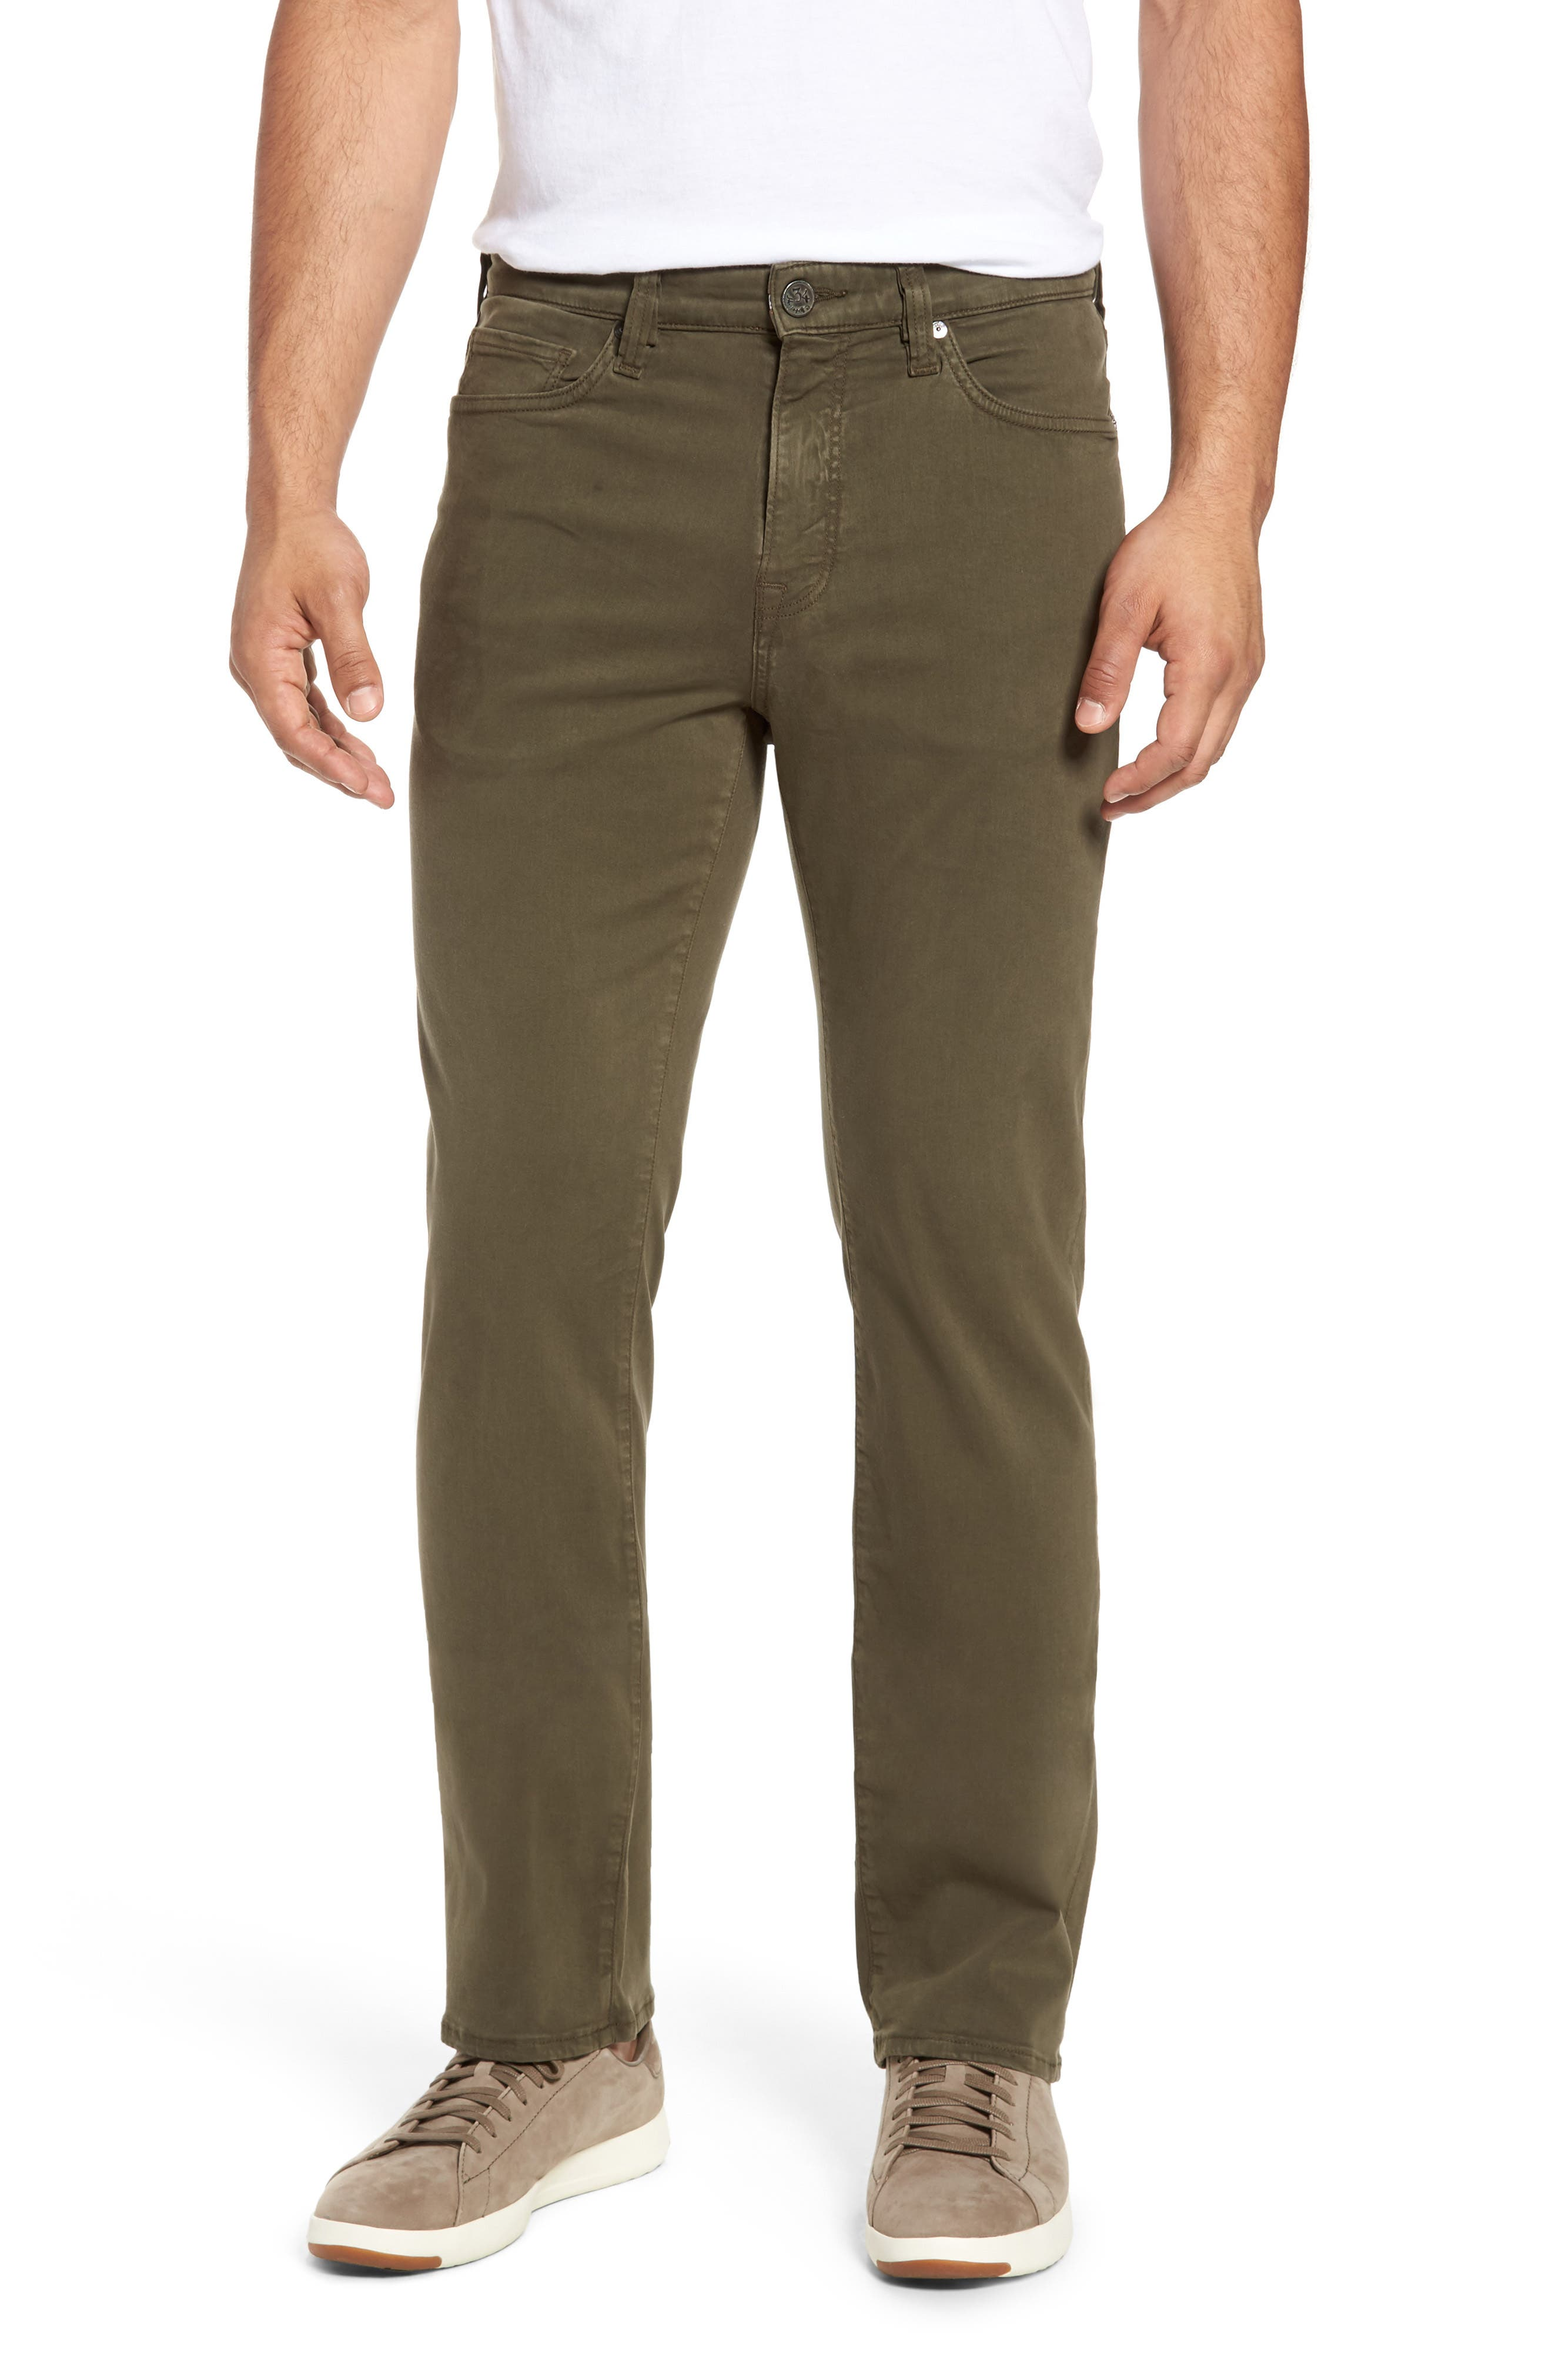 34 Heritage Charisma Relaxed Fit Pants (Olive Twill)